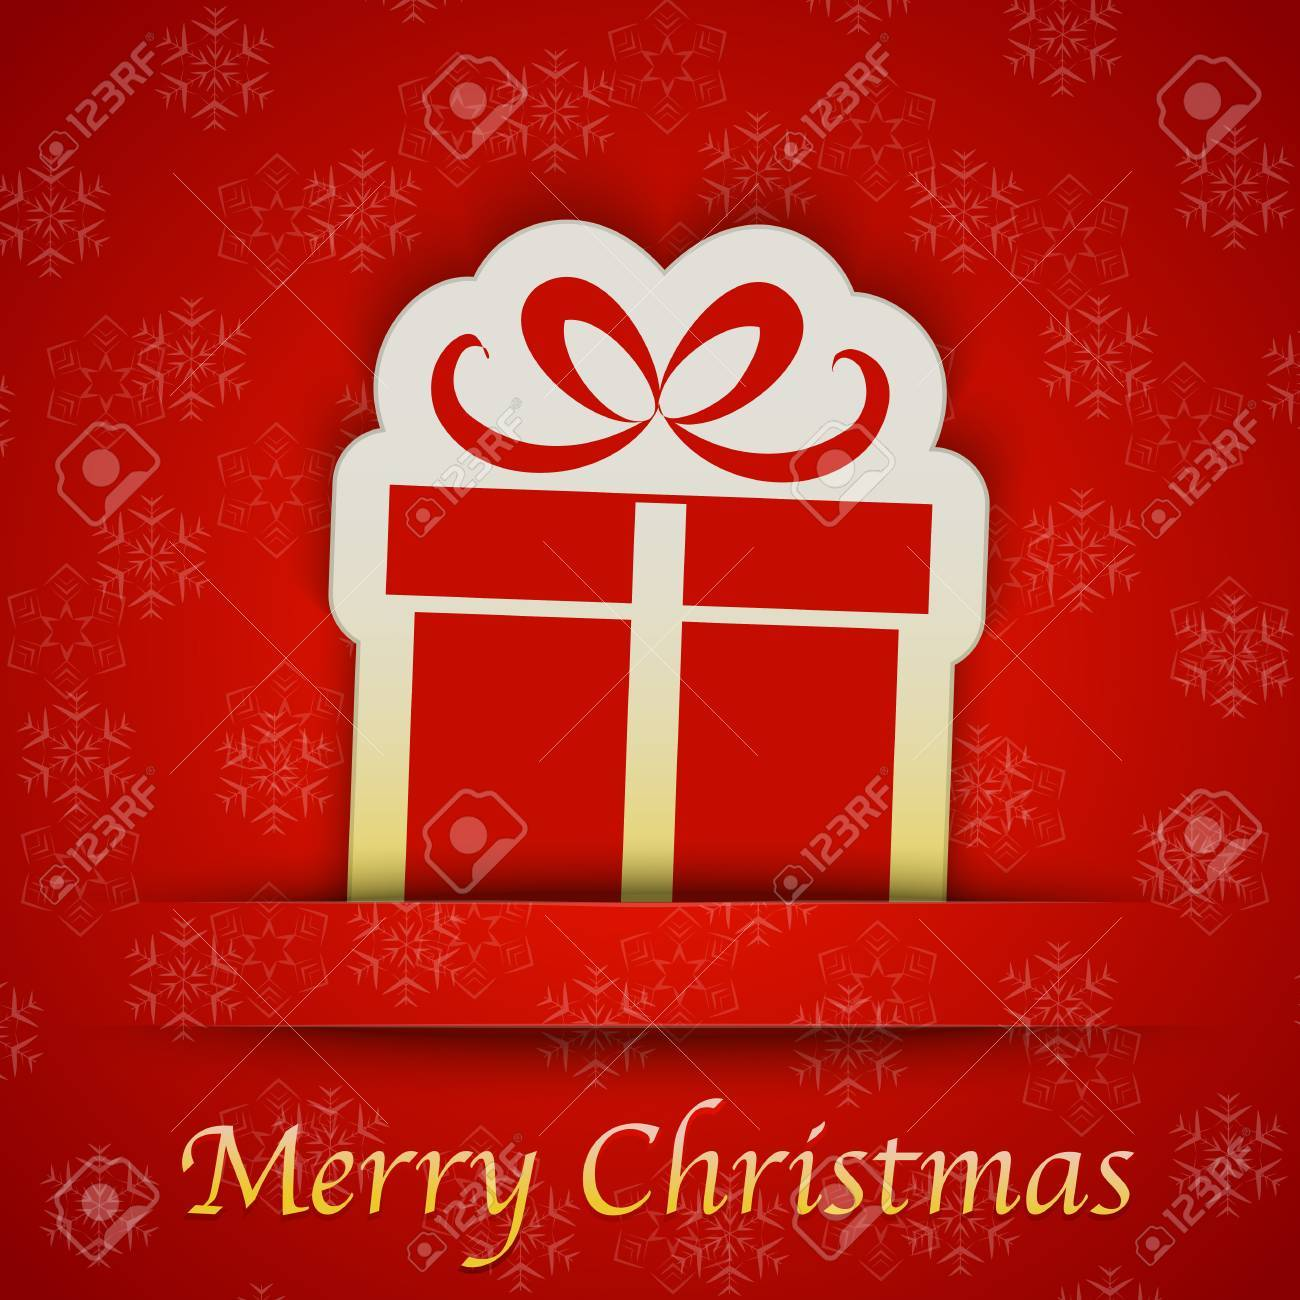 Merry Christmas Gift Card With A Simple Gift Sign Sticker Placed ...